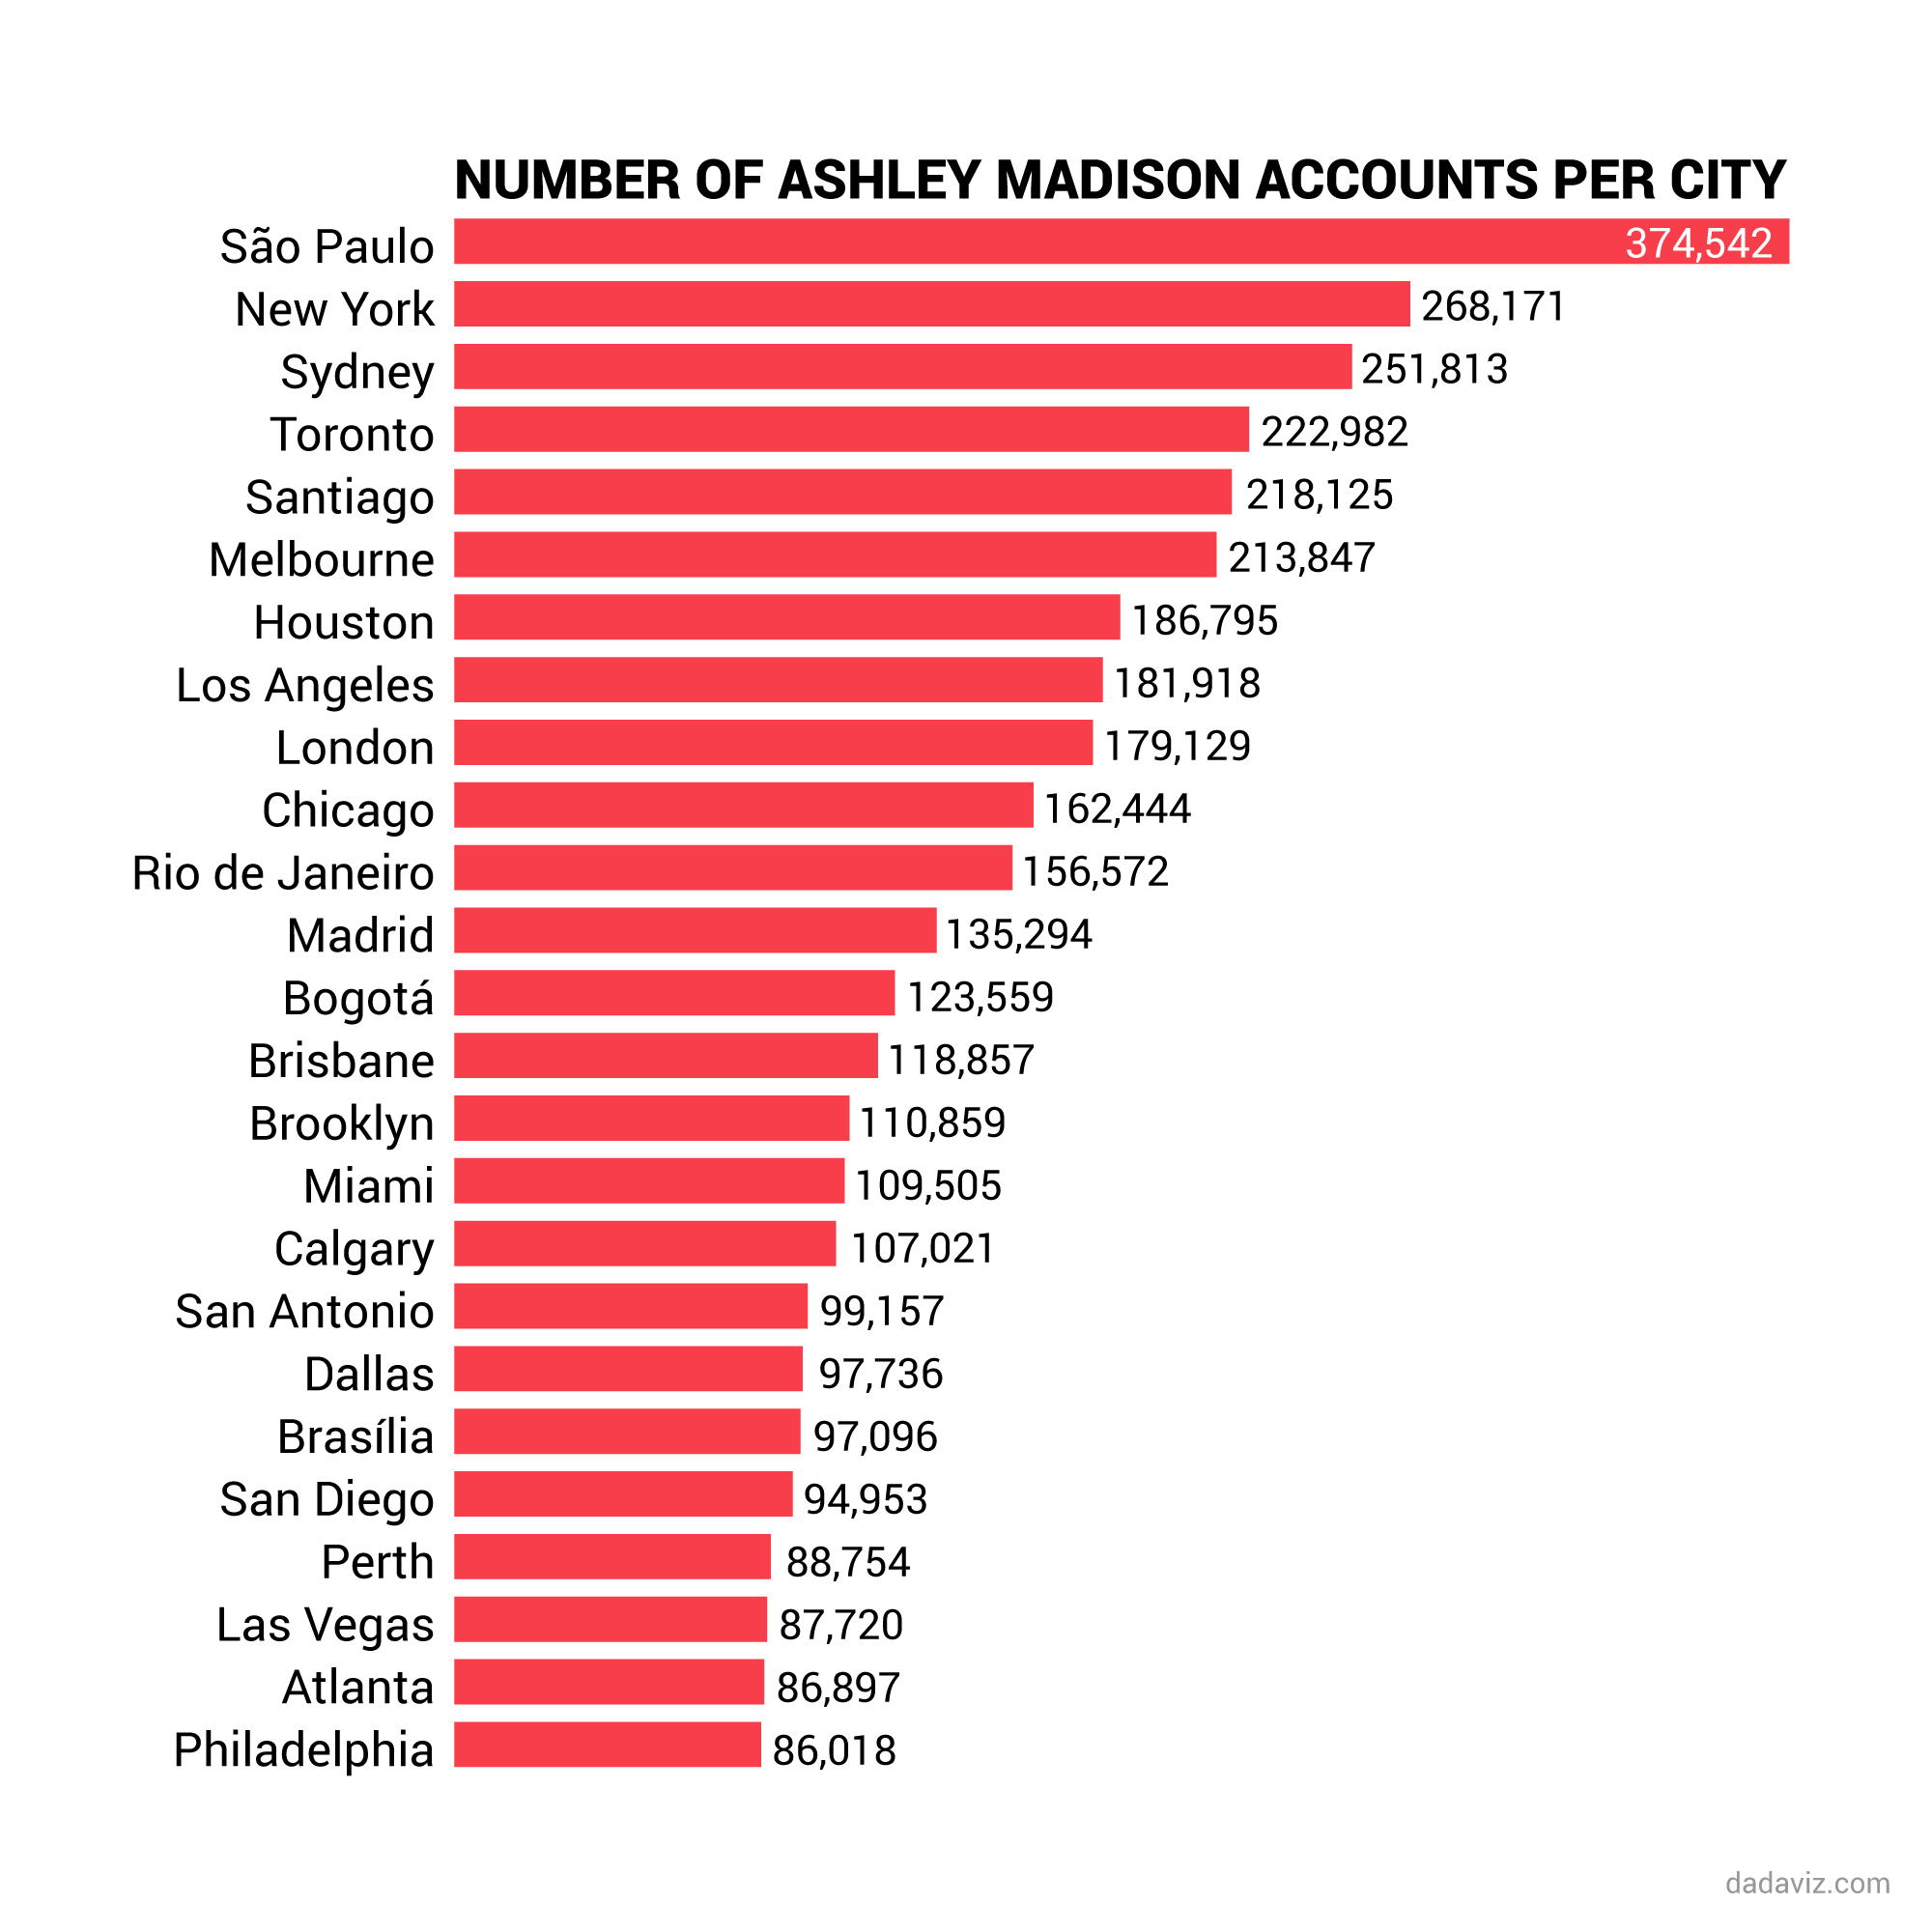 toronto has fourth-highest number of ashley madison clients in the